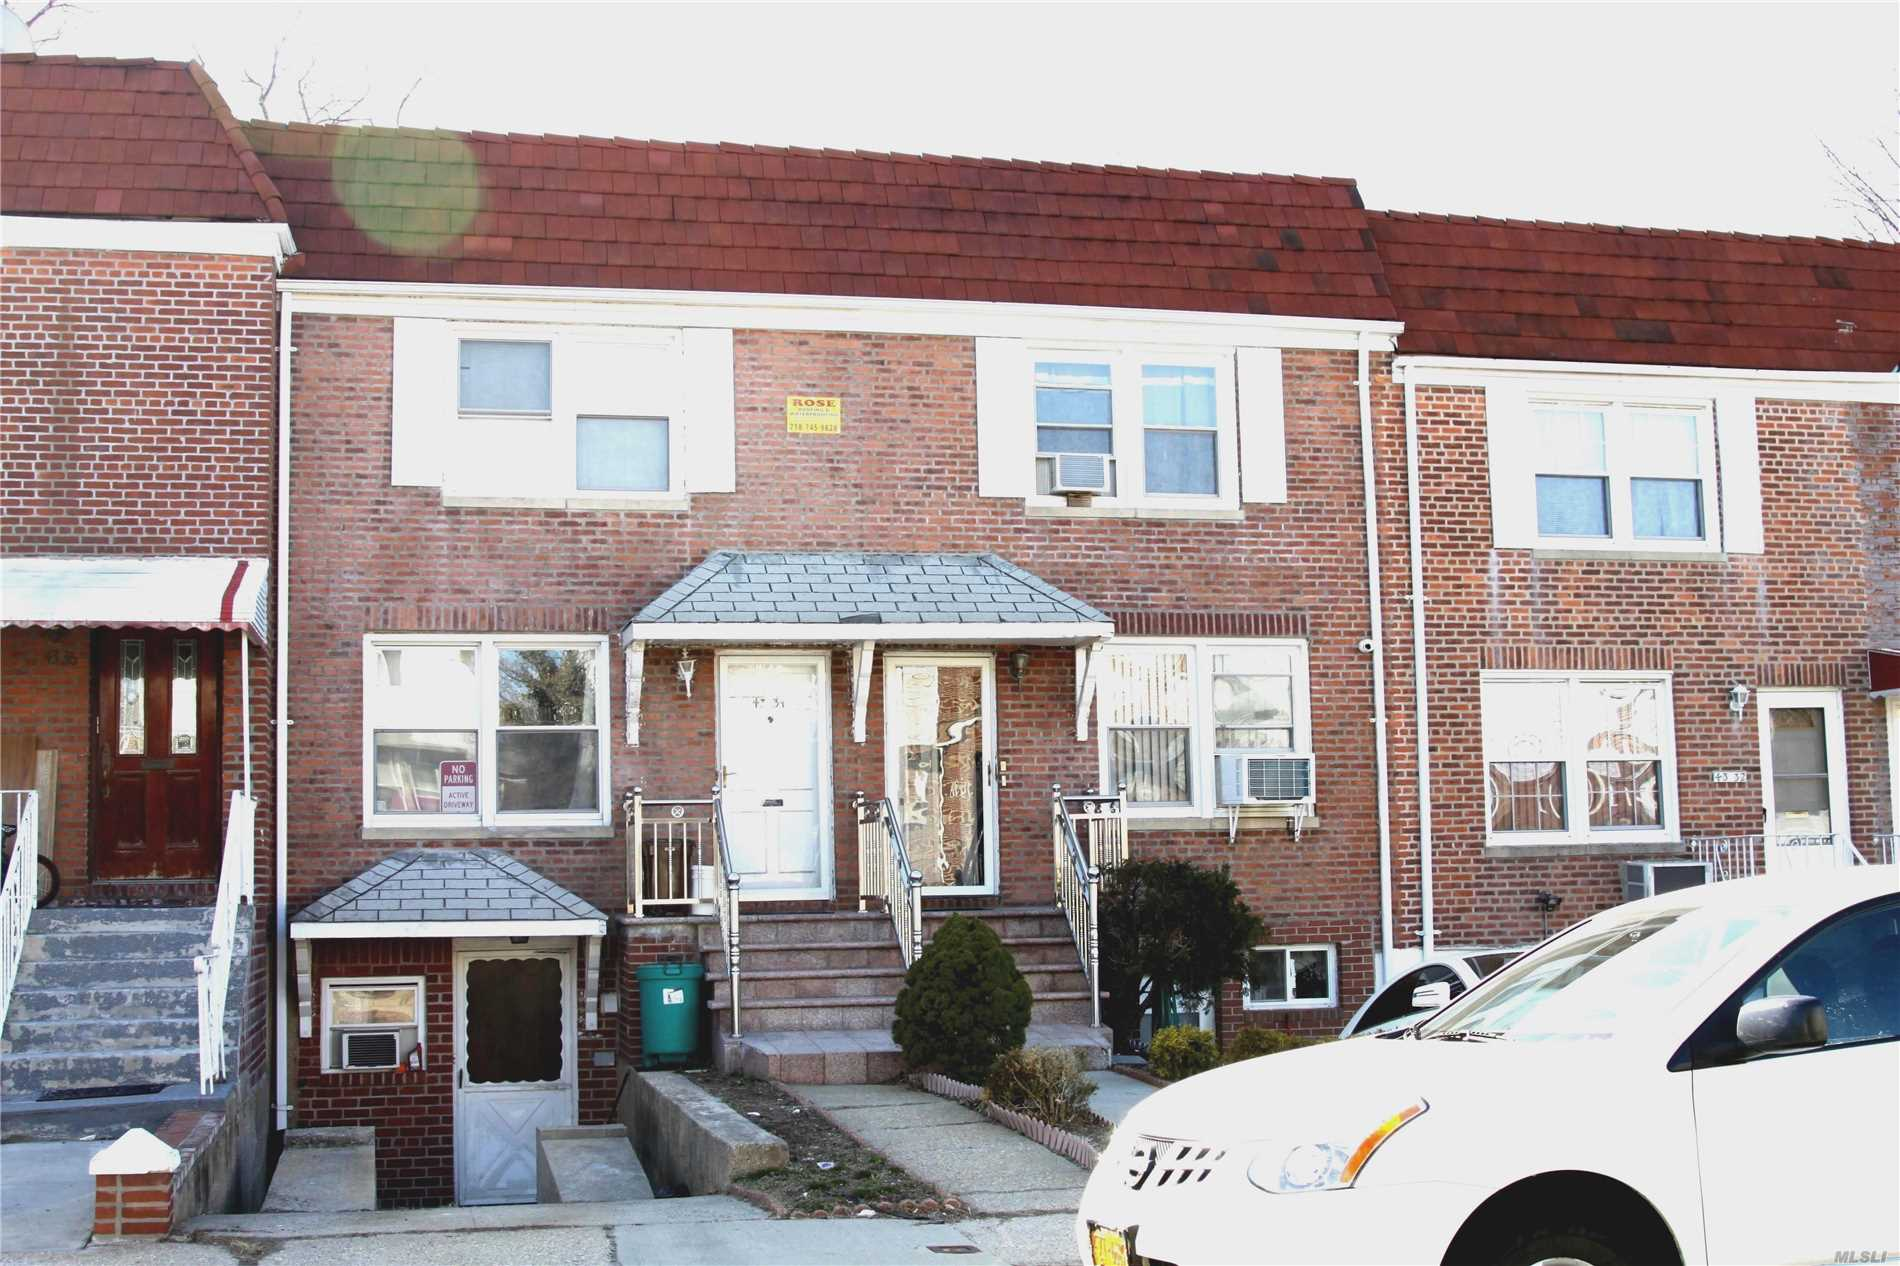 R3-2 Zoning(2 Family Zoning) Currently 1 Family Brick Att Townhouse, Basement Has Permit,  Legal To Have People Live At Basement . New Roof, Boiler, Bayside School Area. School District #26. Bus Stops Right On Northern Blvd.